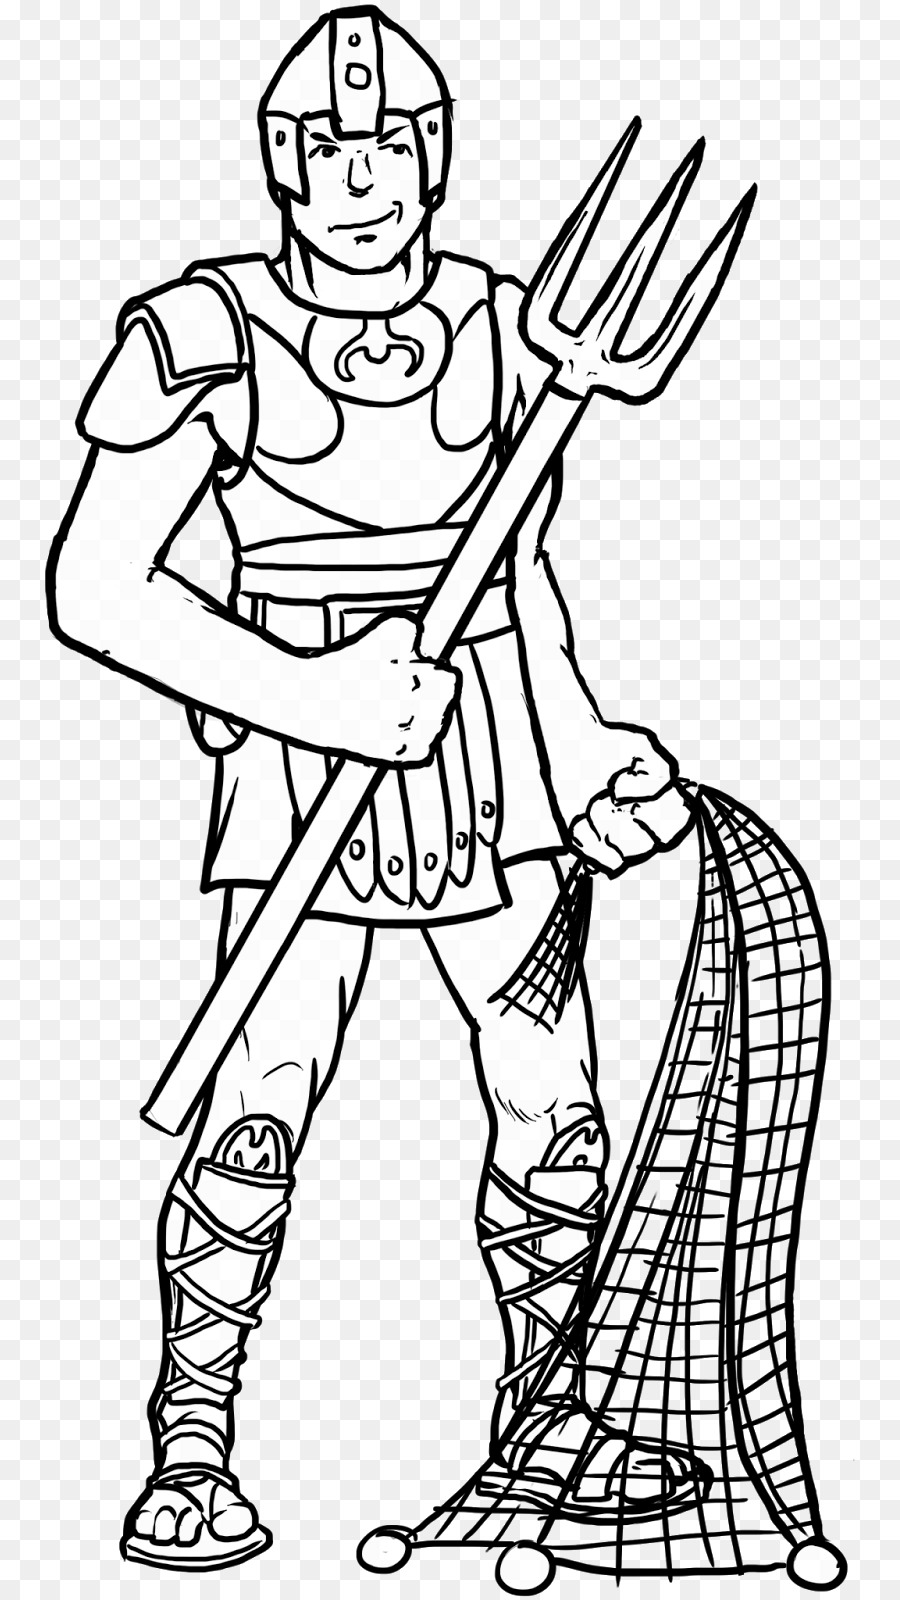 gladiator drawing how to draw a gladiator step by step figures people gladiator drawing